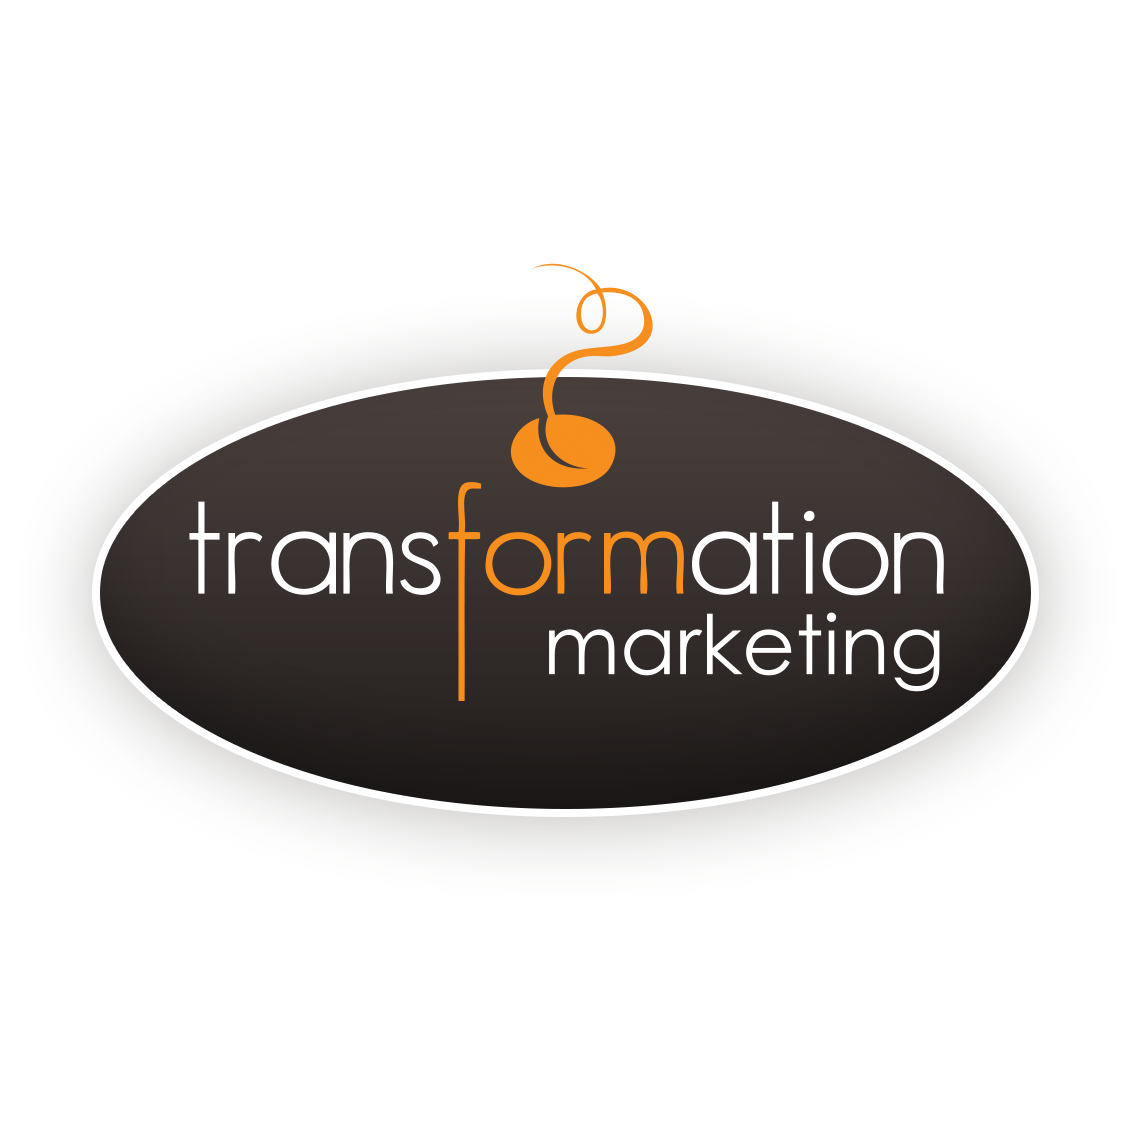 image of the Transformation Marketing